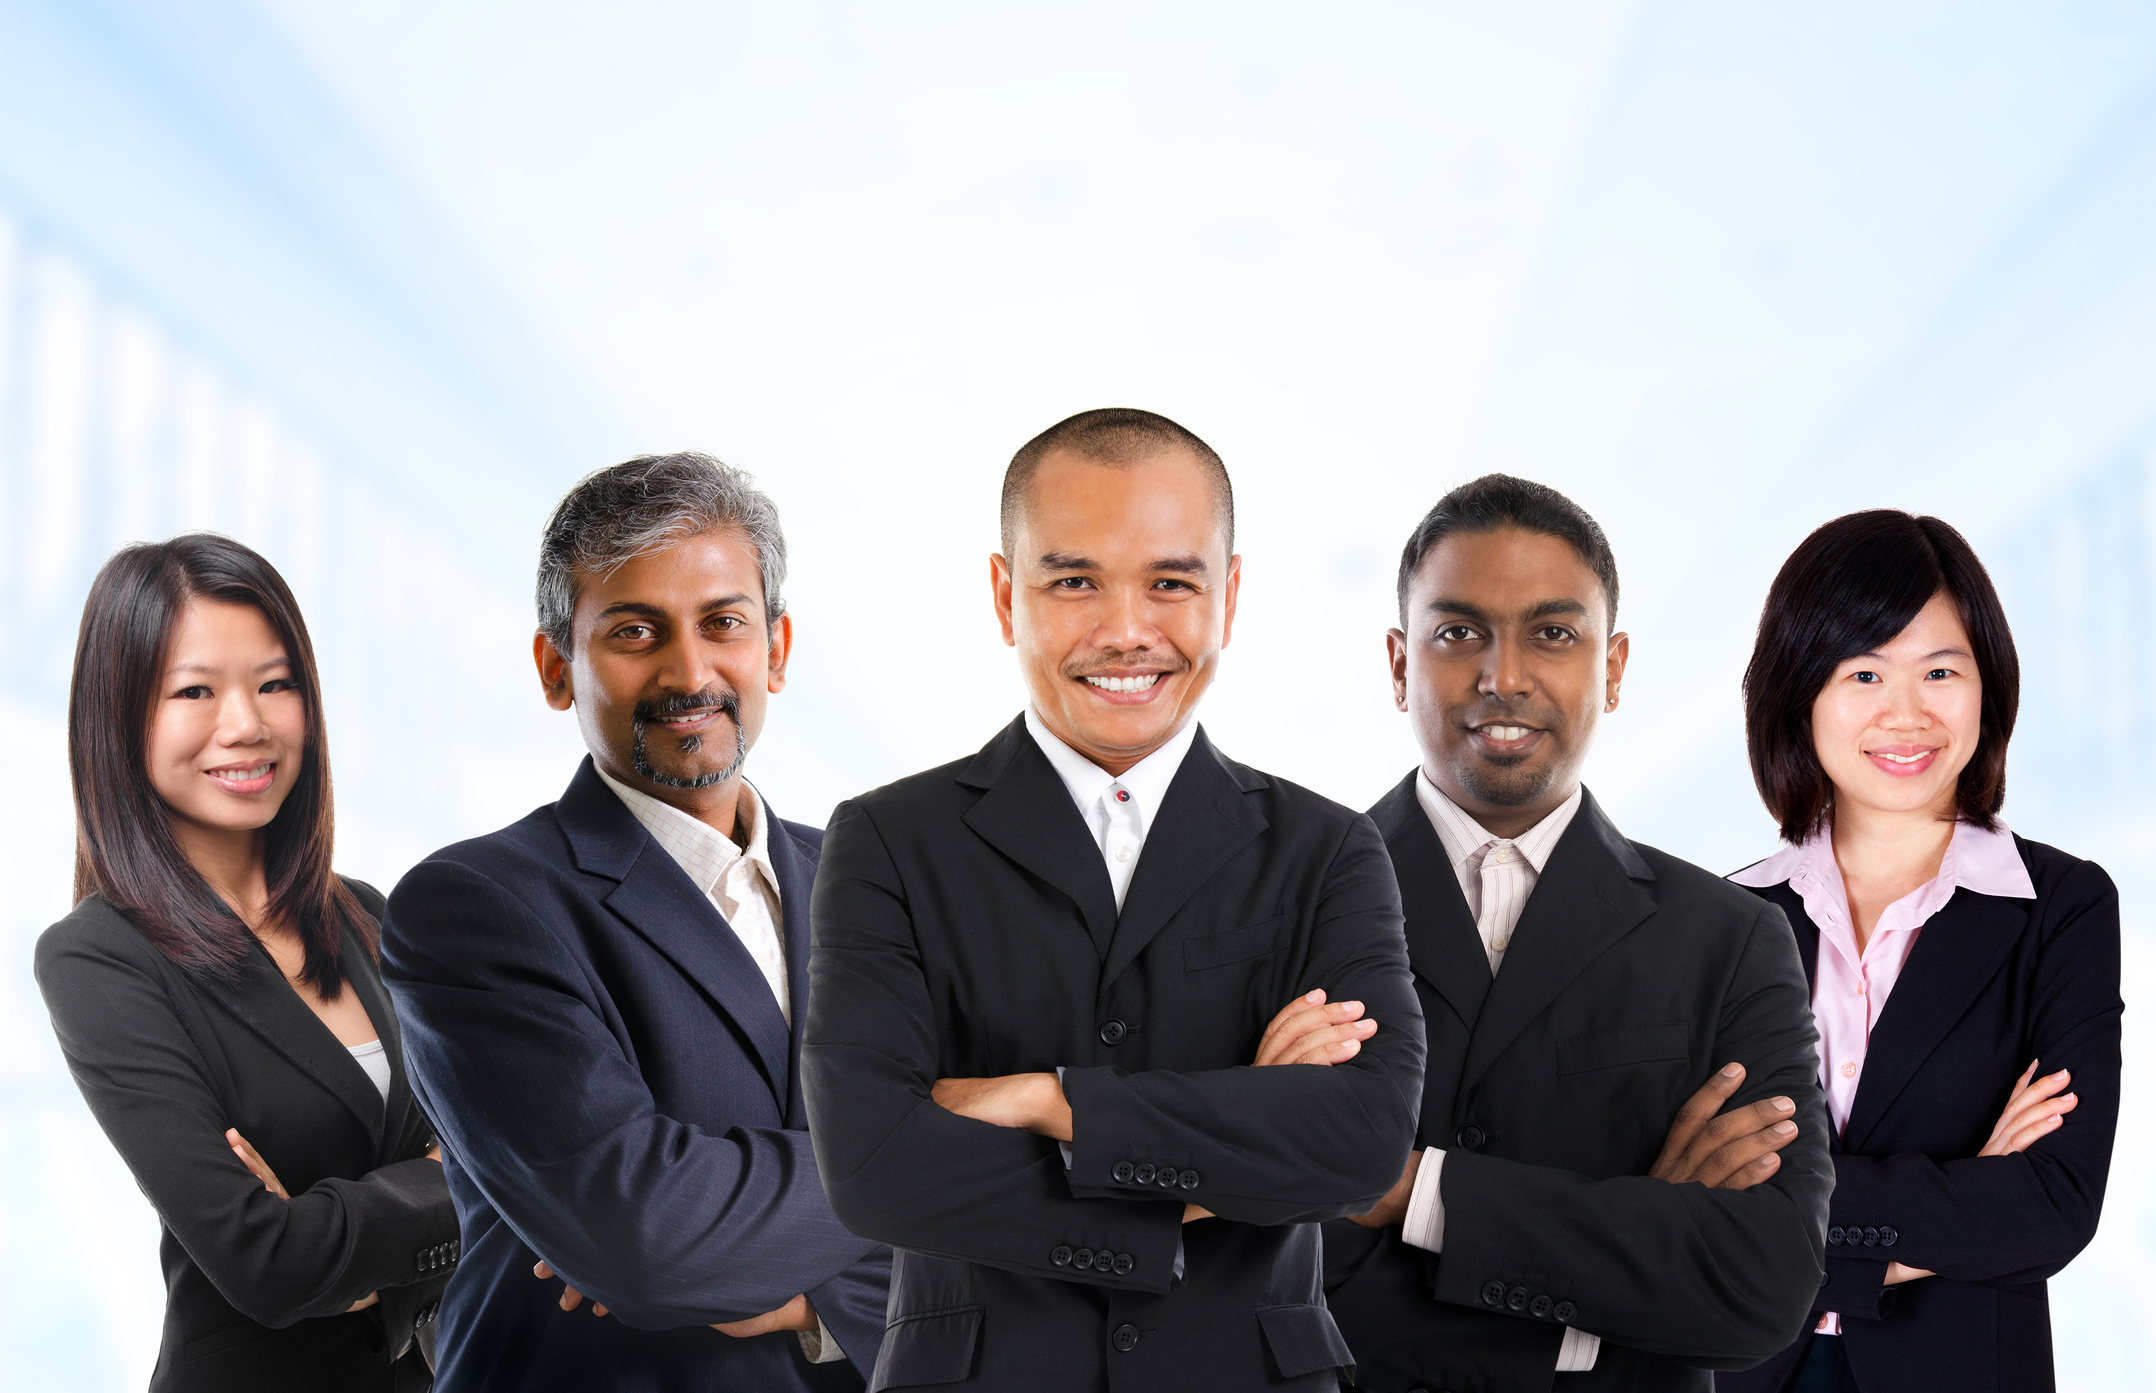 6 Key Concepts For Diversity Training In the Workplace